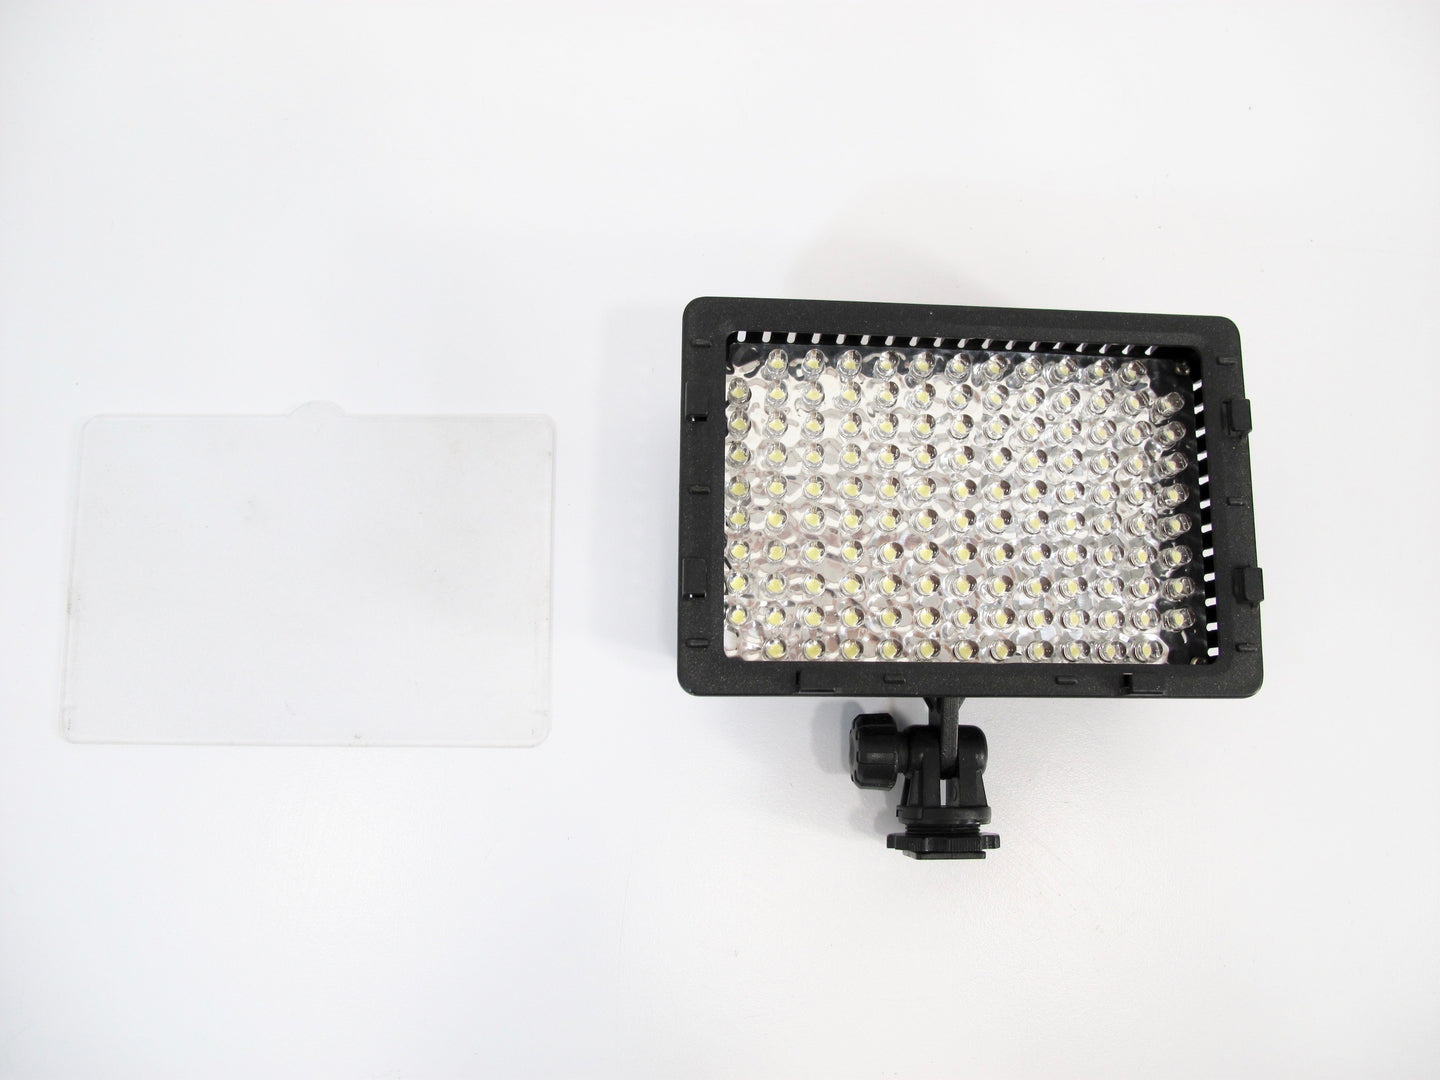 Neewer CN-126 On Camera Dimmable 126 LED Light Attachment with Diffuser